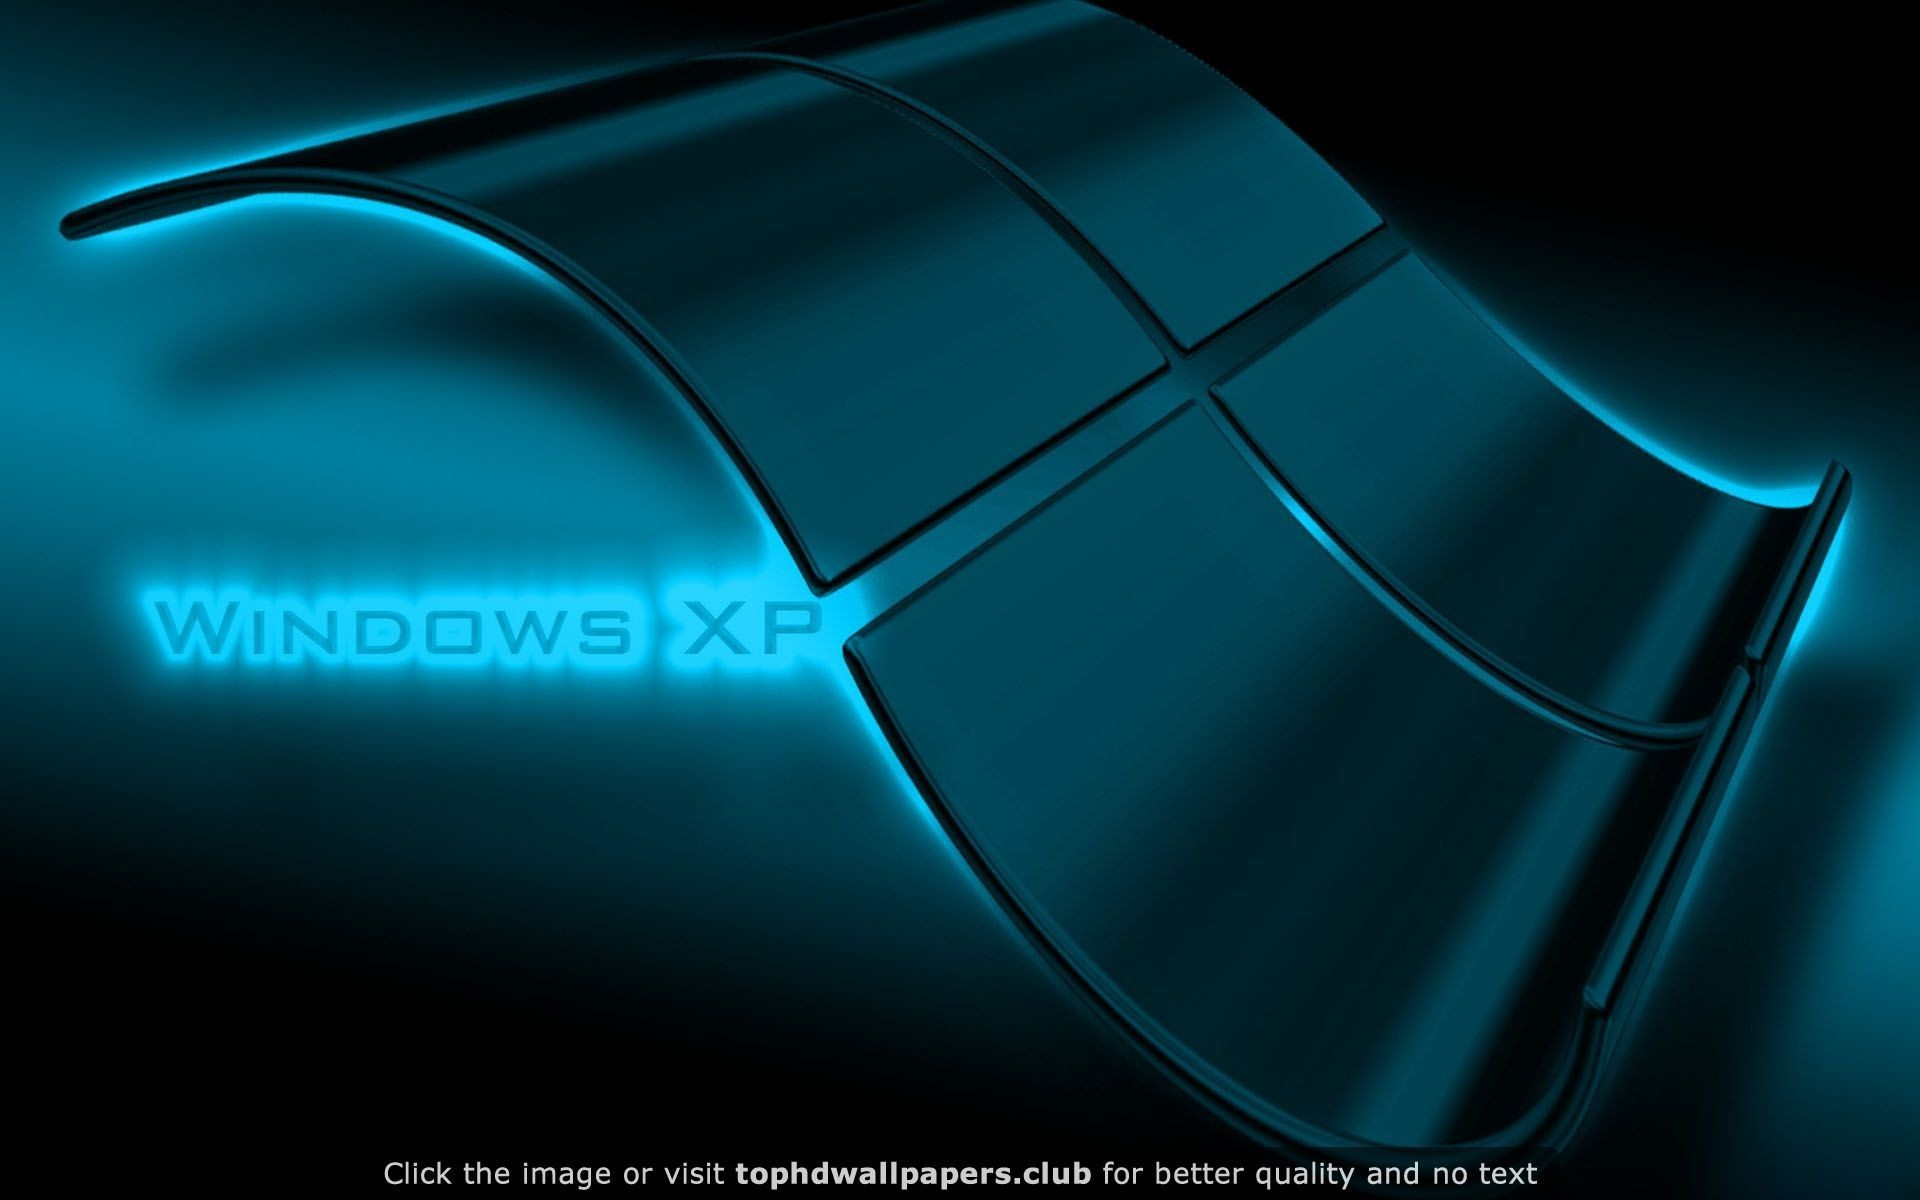 Windows Xp Hd 1080P 4K or HD wallpaper for your PC, Mac or Mobile .